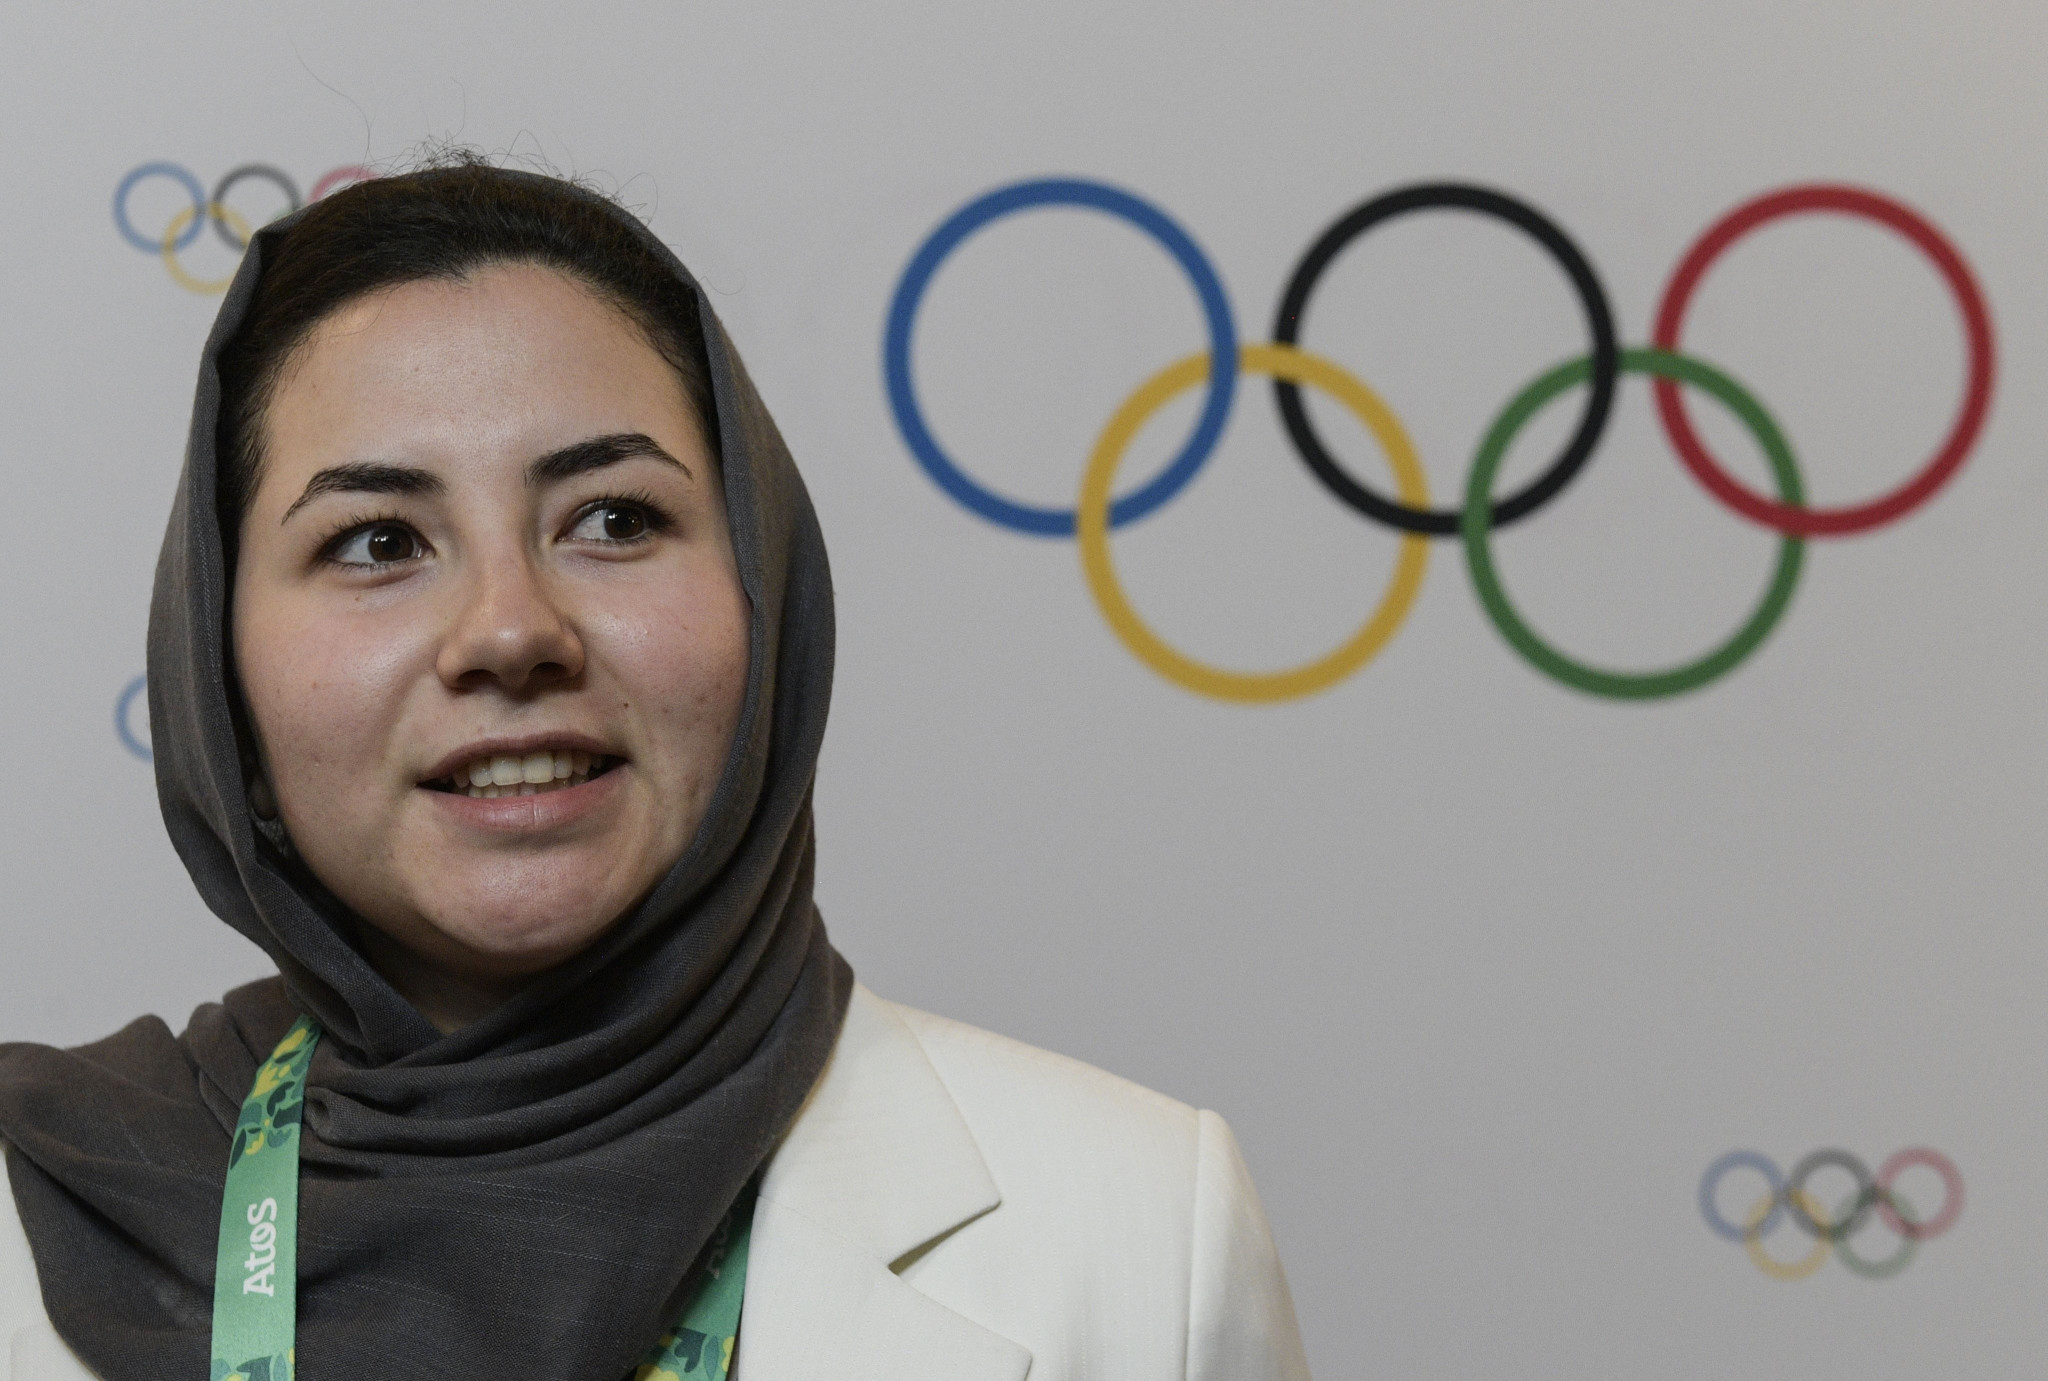 Afghanistan's first IOC member Asghari named national sports personality of the year